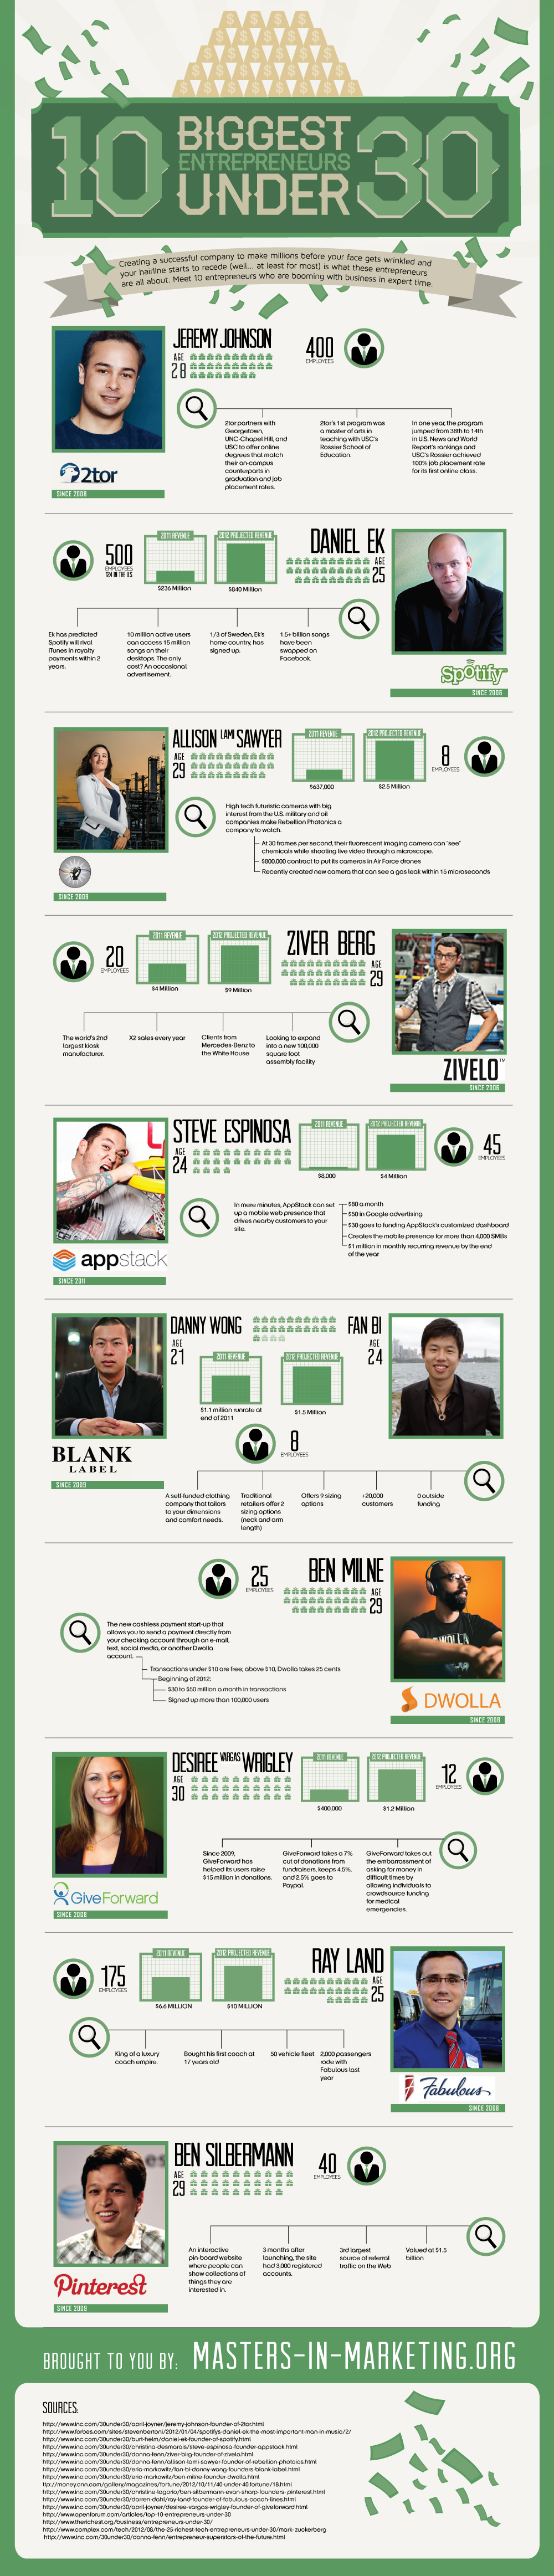 young entrepreneurs infographic